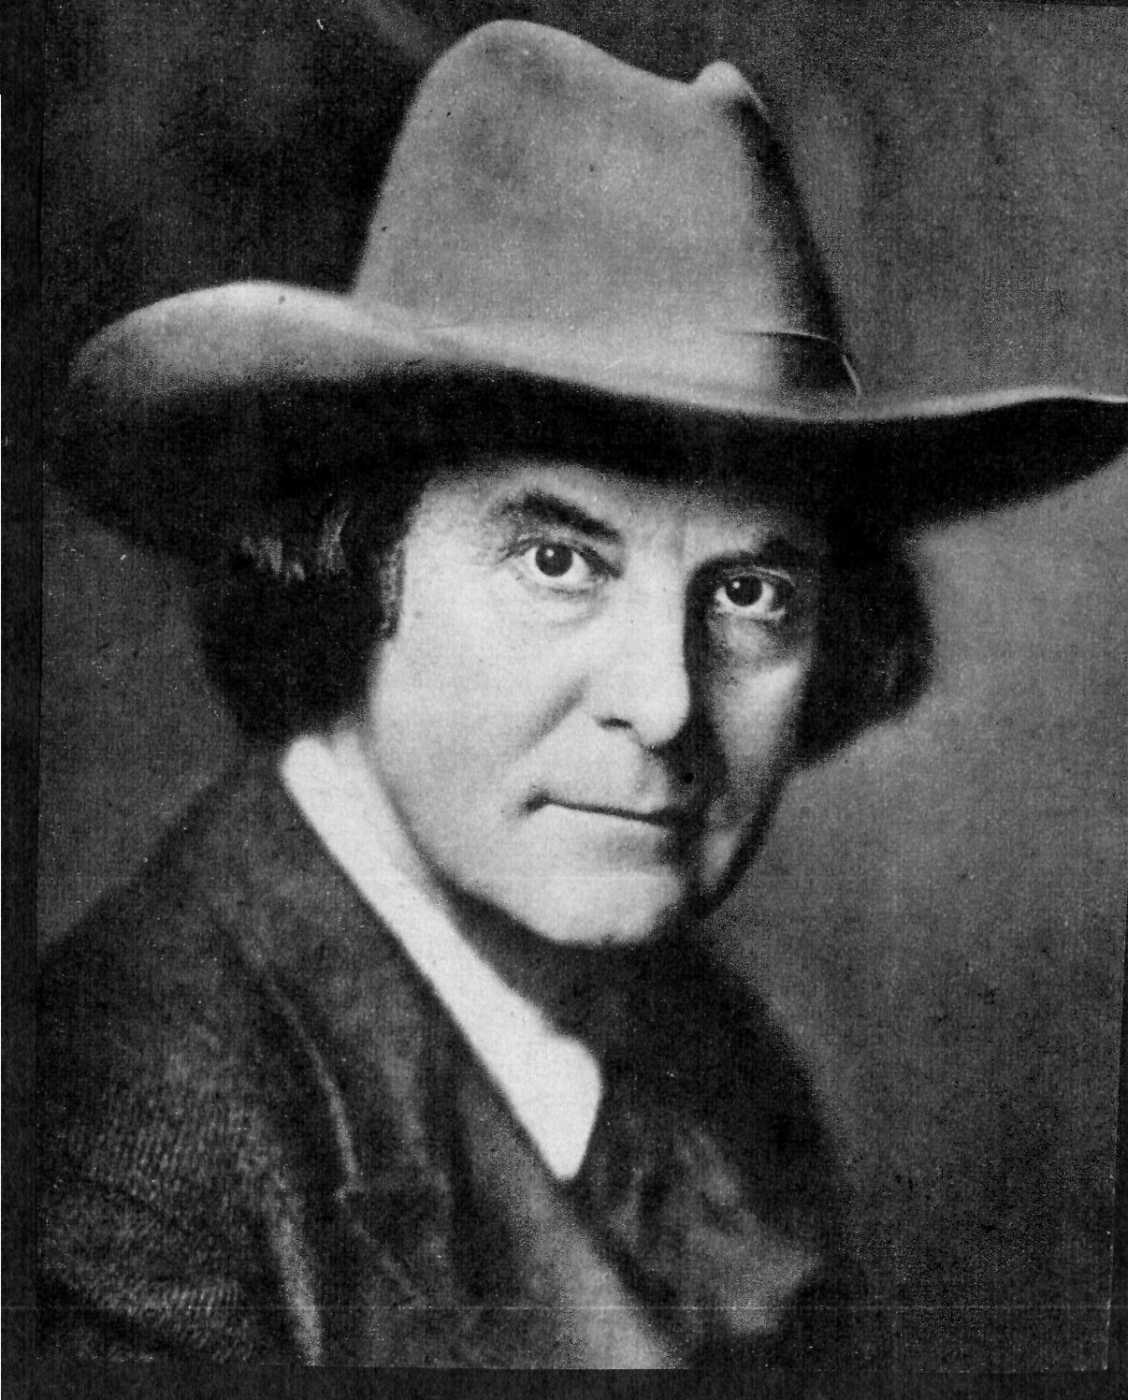 Photo of Elbert Hubbard